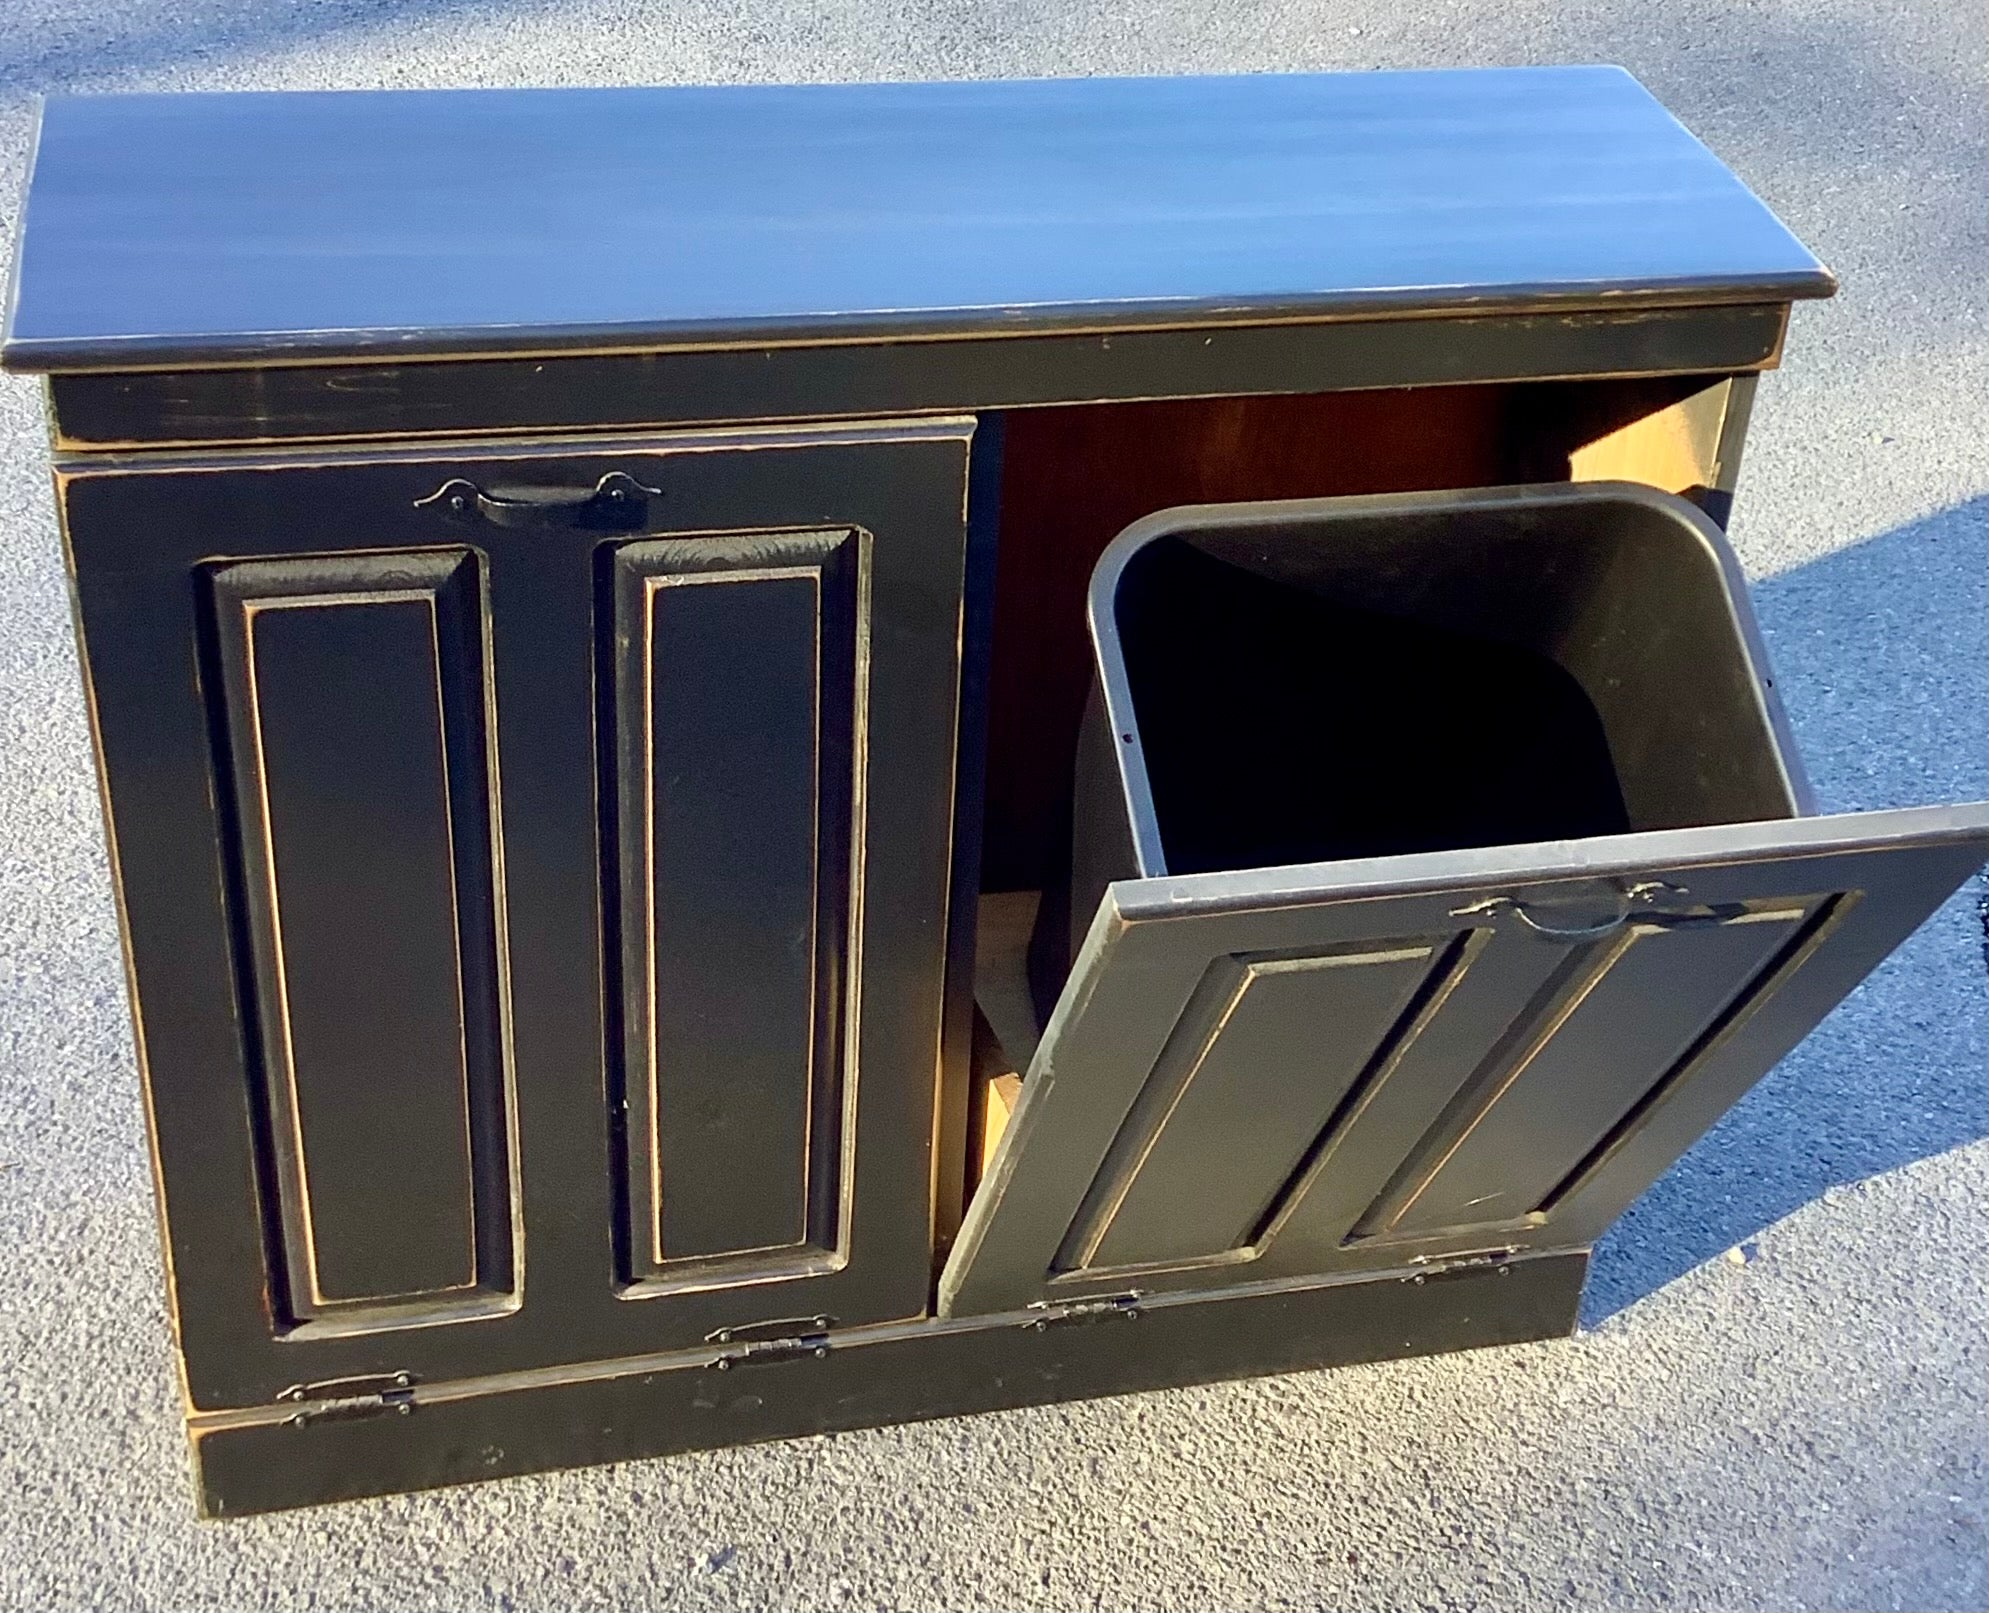 Farmhouse Double Tilt Trash/Recycle Unit